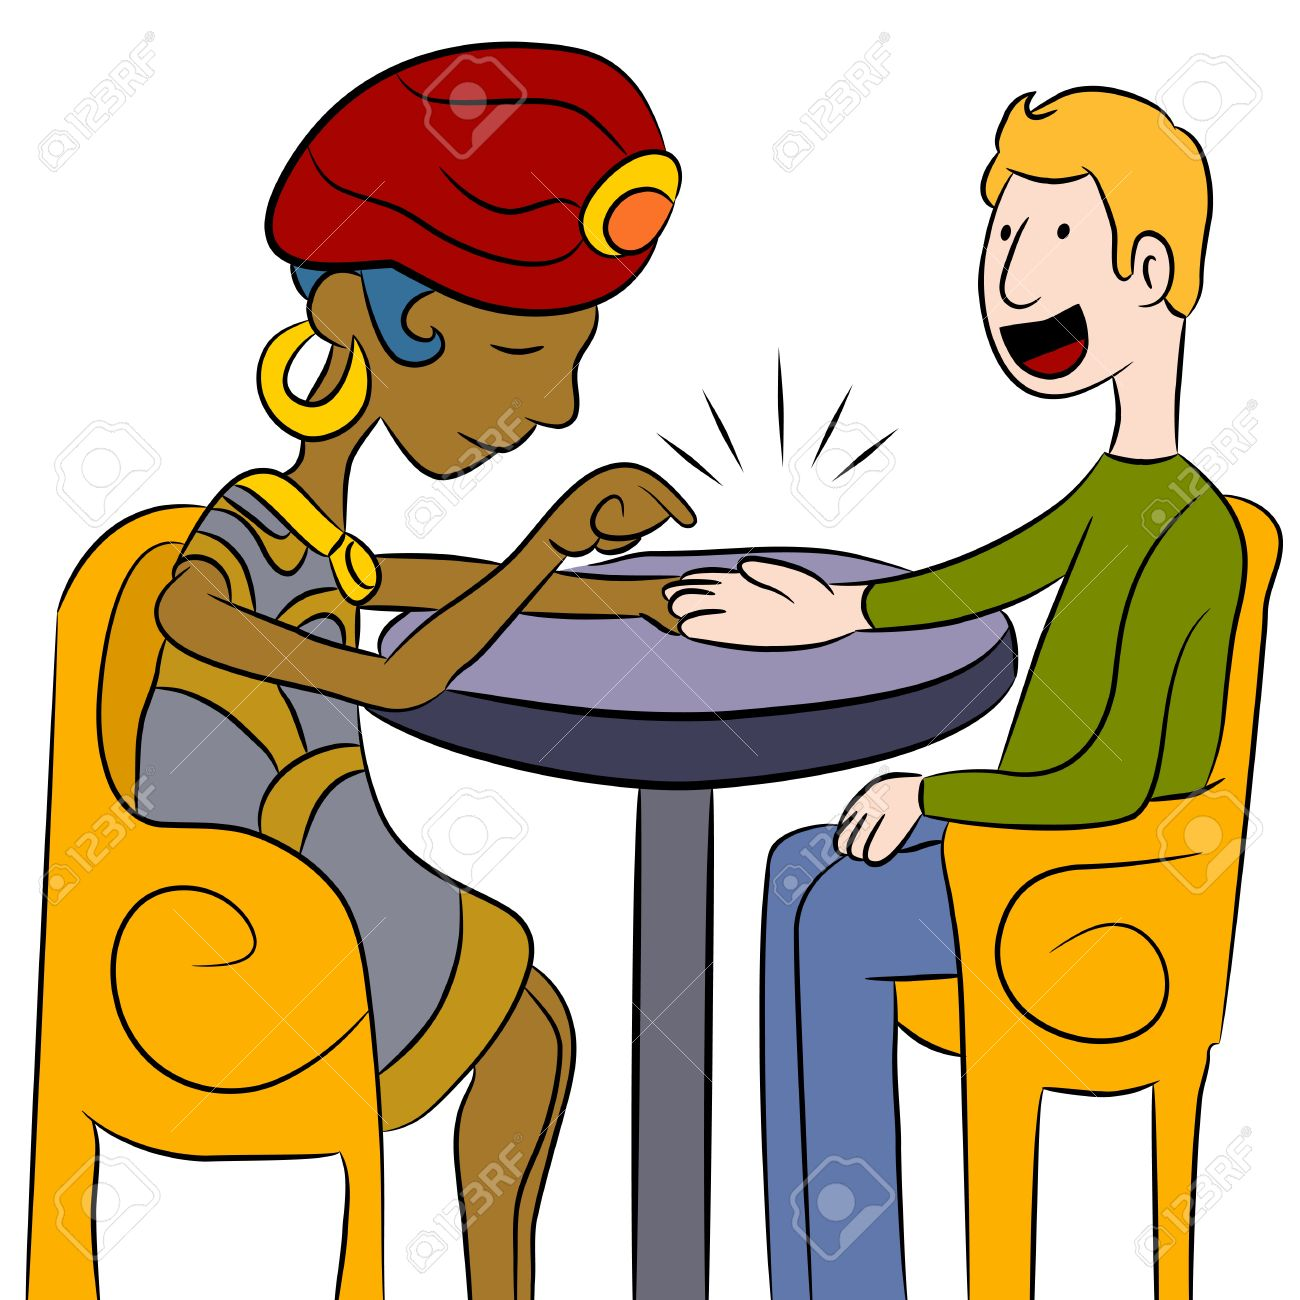 An image of a psychic palm reader with a client. Stock Vector - 9629010